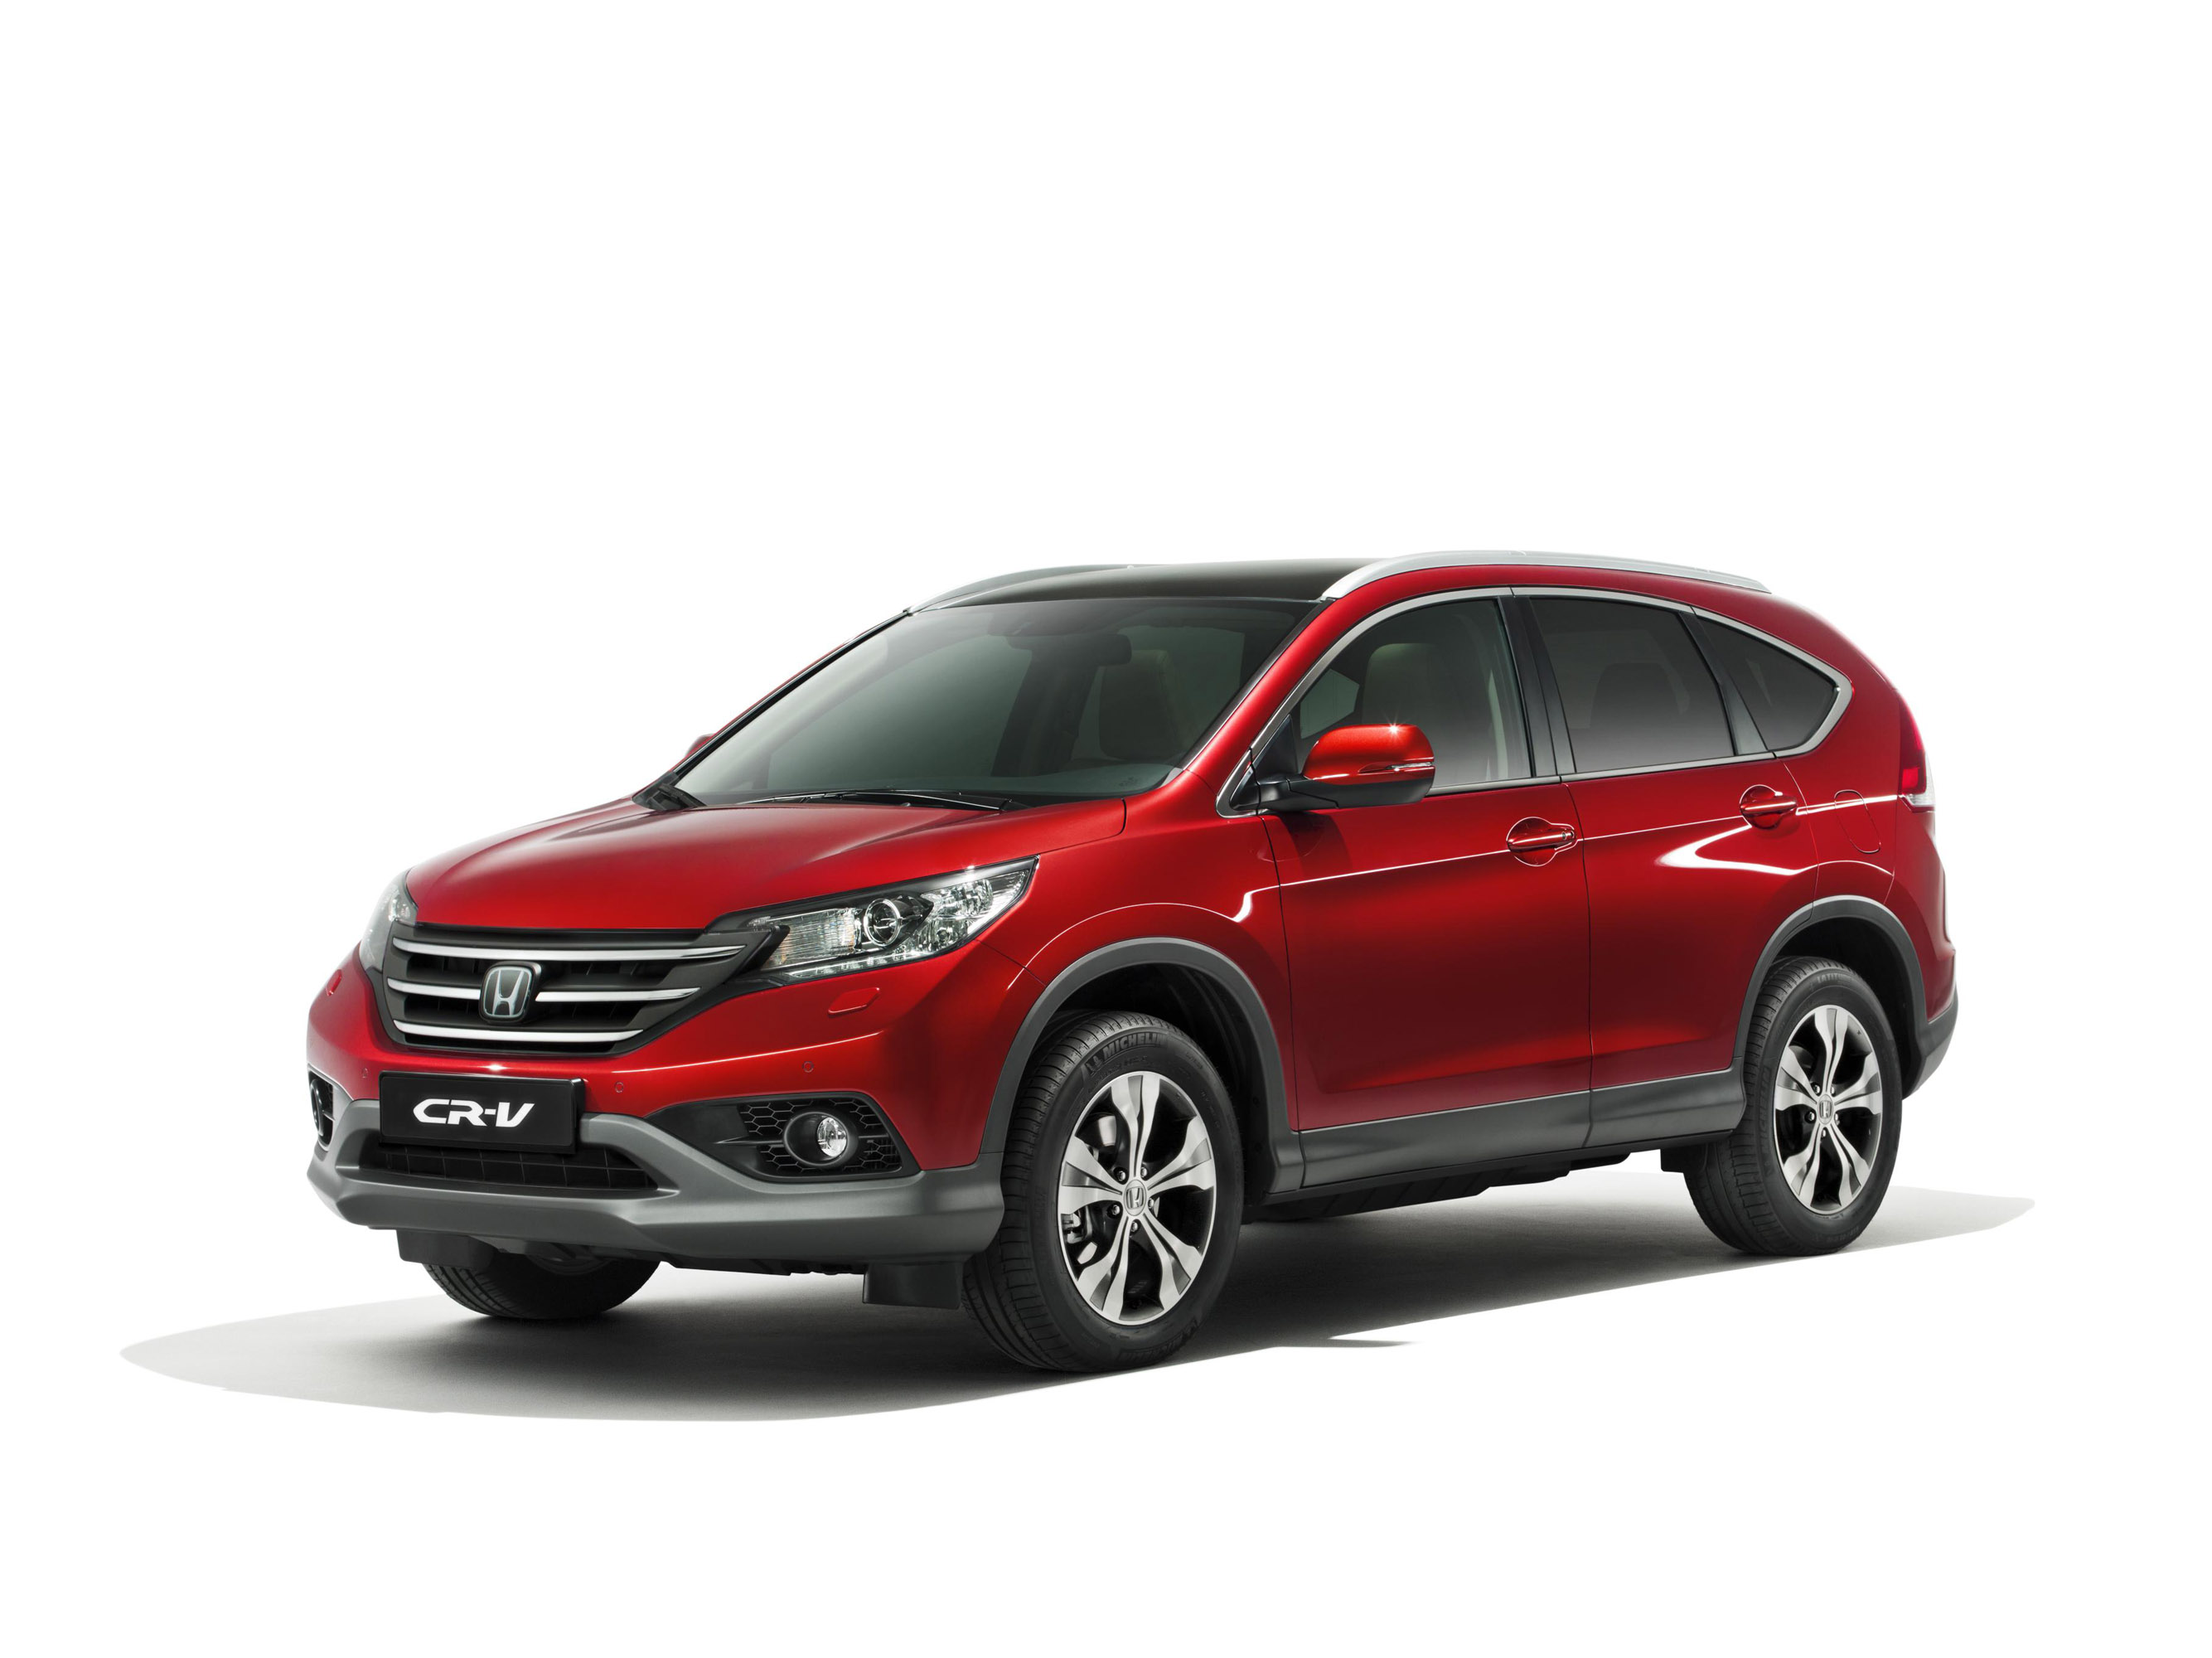 2012 honda cr v facelift video. Black Bedroom Furniture Sets. Home Design Ideas